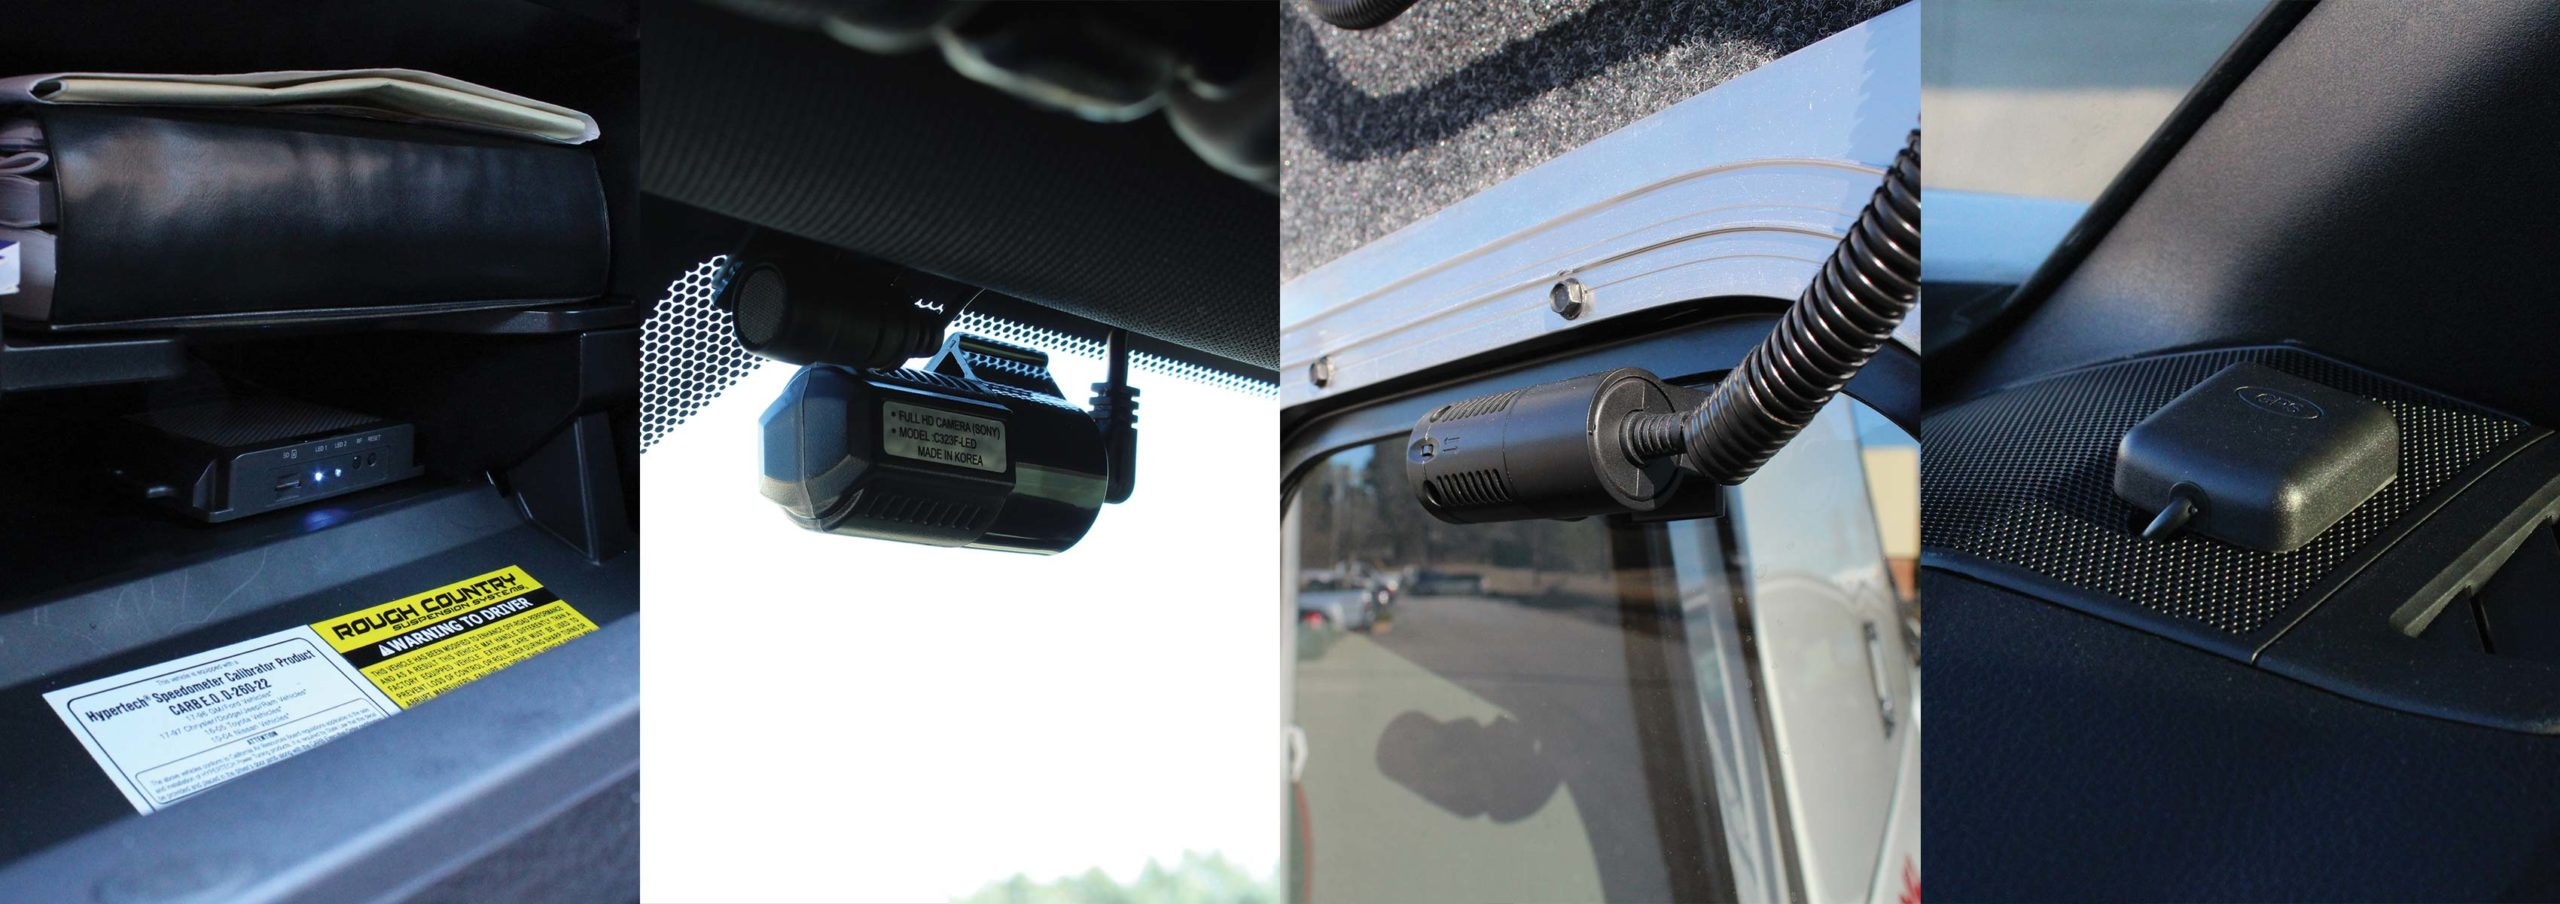 250-8950 Dual-Channel HD DashCam Event Recording System